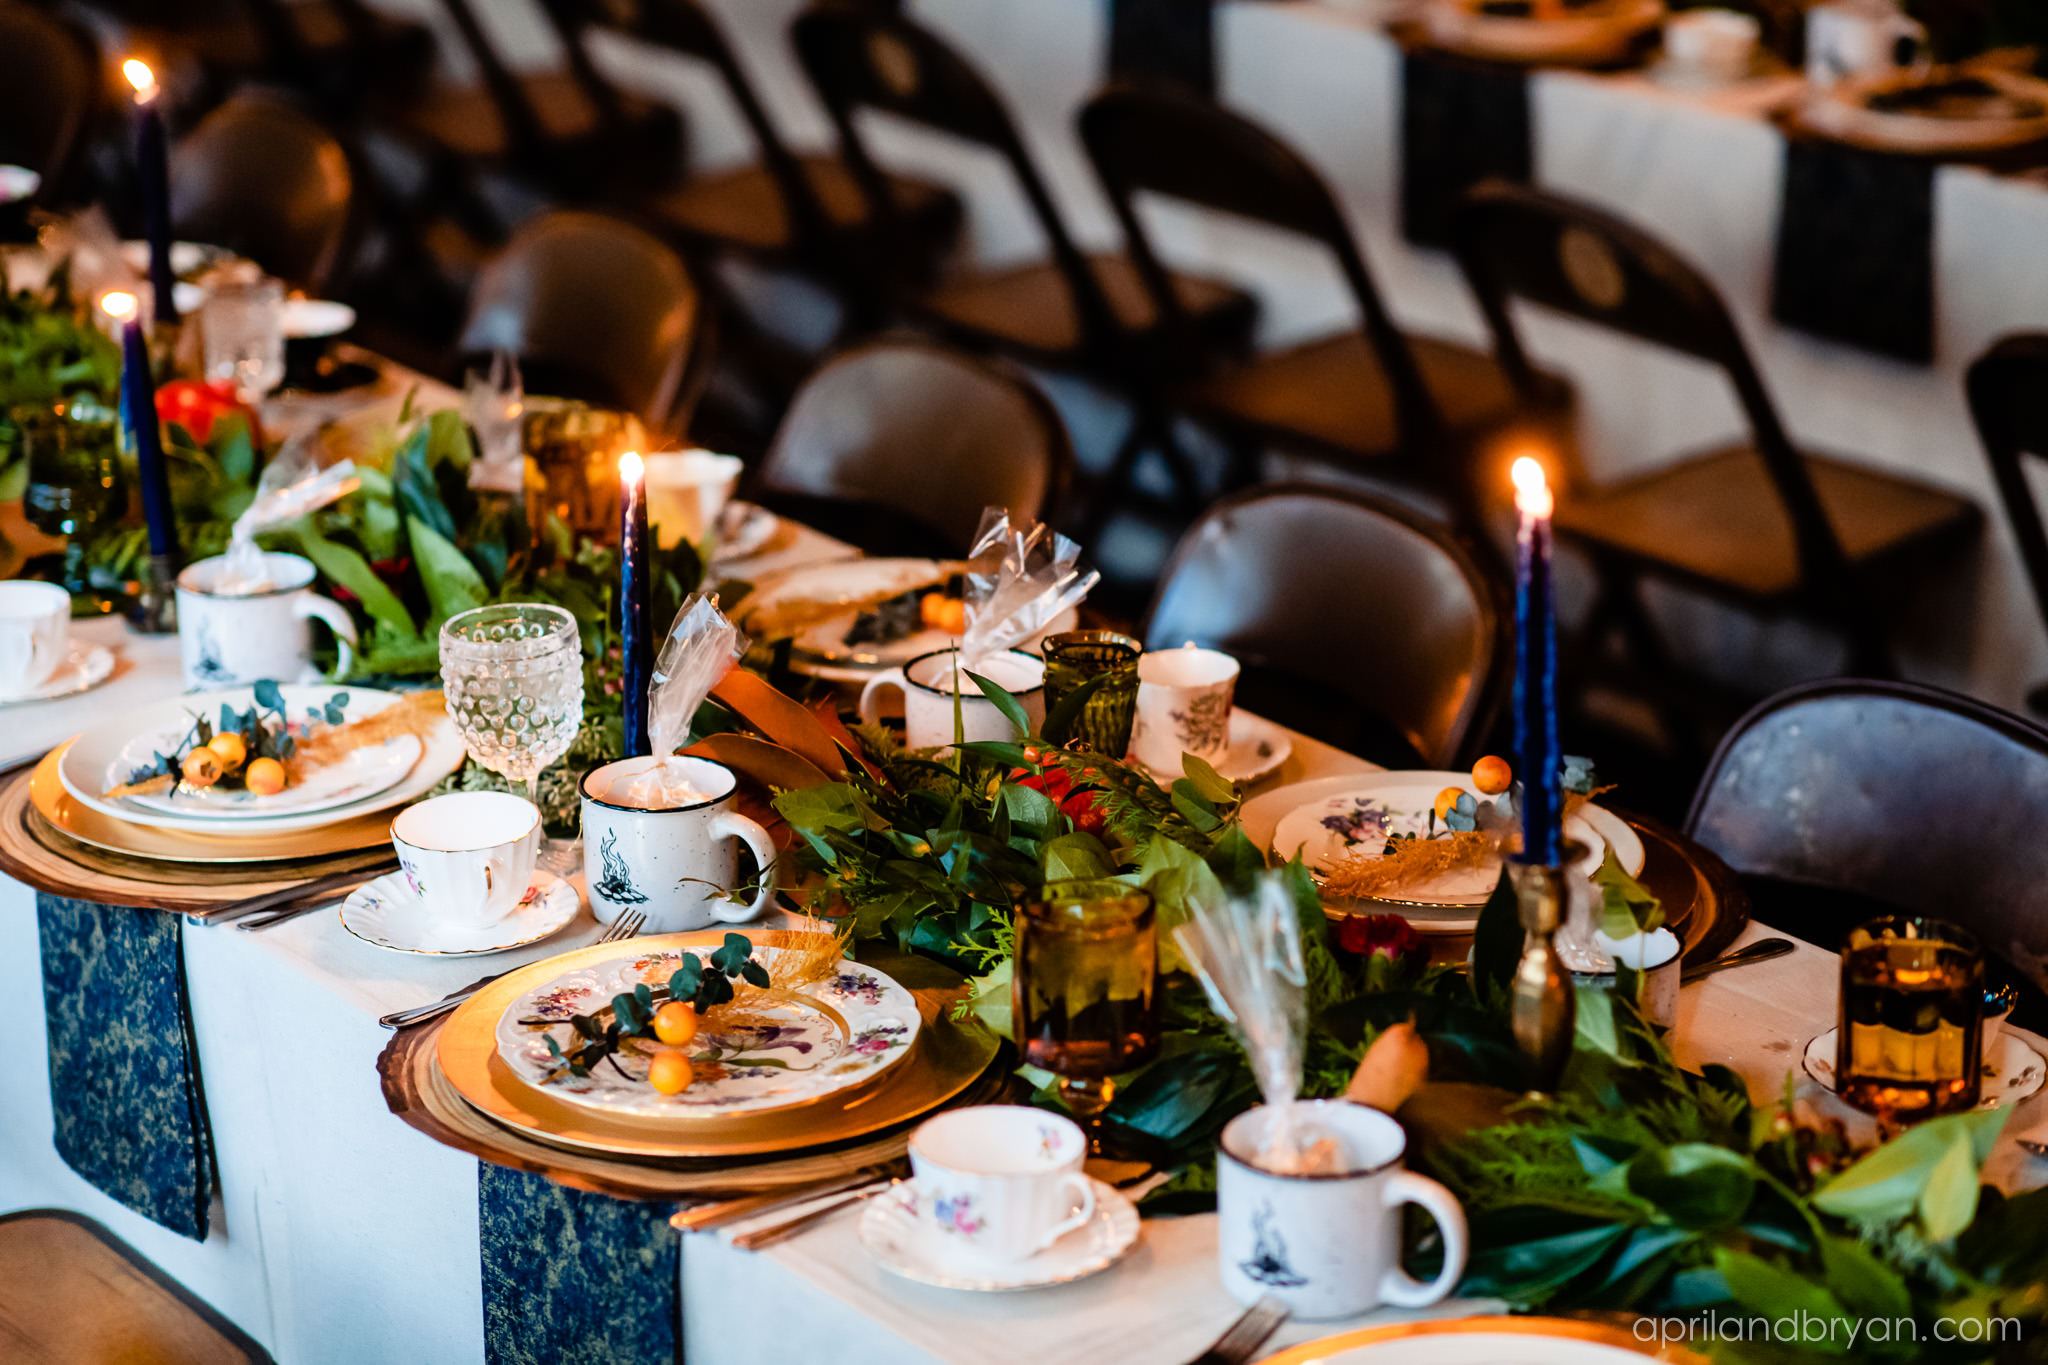 greenery lined the table like an organic table runner. Nicholas and Rebecca Fasnacht tie the not at Tellus360 on November 1, 2019. Captured by April & Bryan Photography and featured on Dream Weddings.